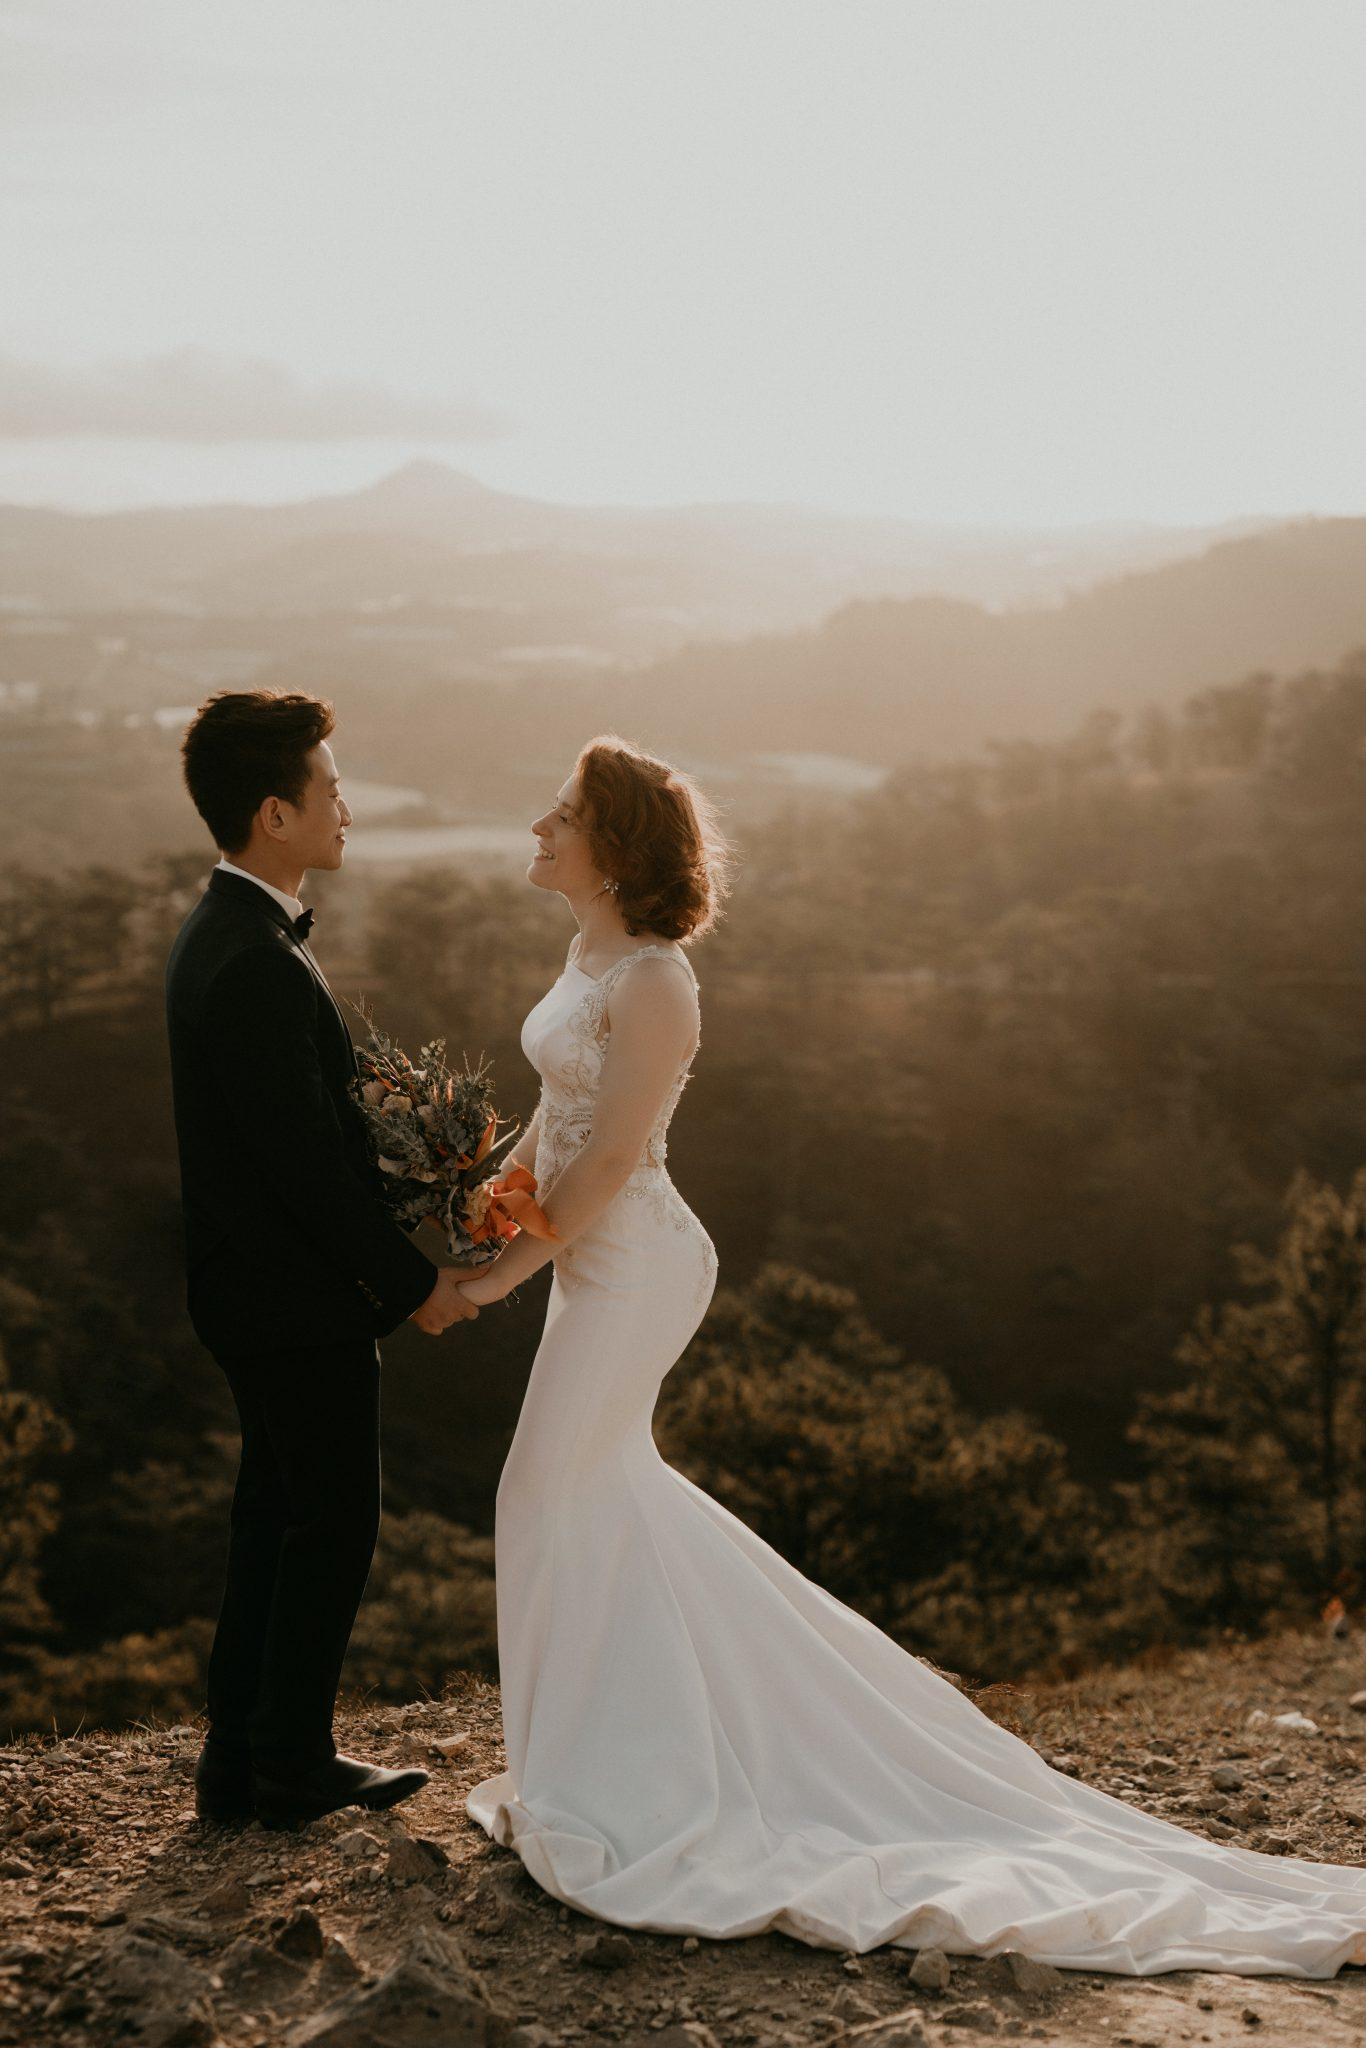 finding the perfect wedding vendor